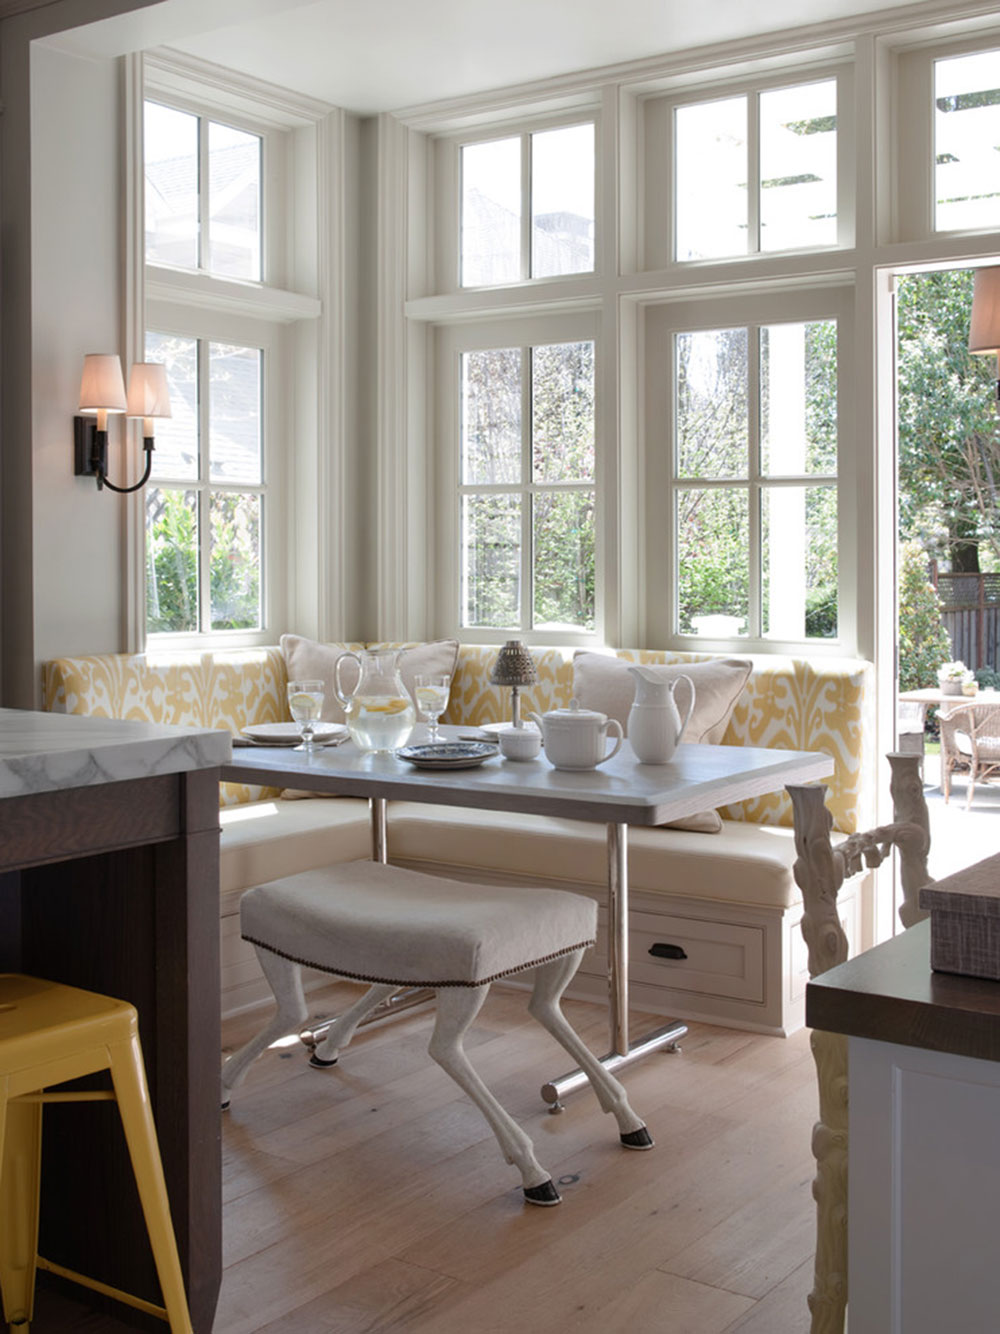 Breakfast-Nook-Design-Ideas-for-Awesome-Mornings3 Breakfast Nook Design-Ideas for Awesome Mornings